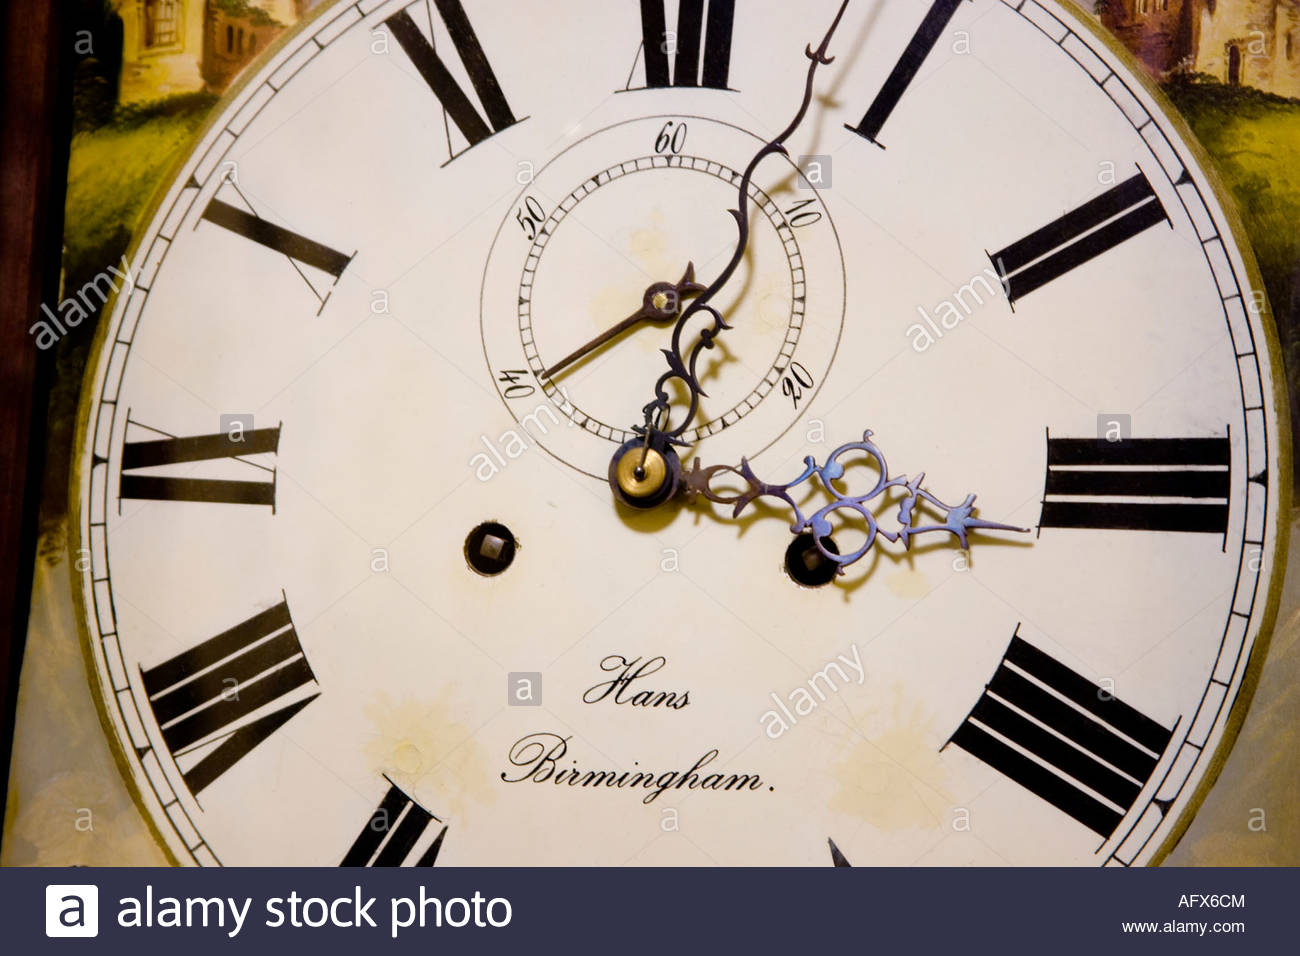 Concept old english clock face made by Hans Birmingham - Stock Image